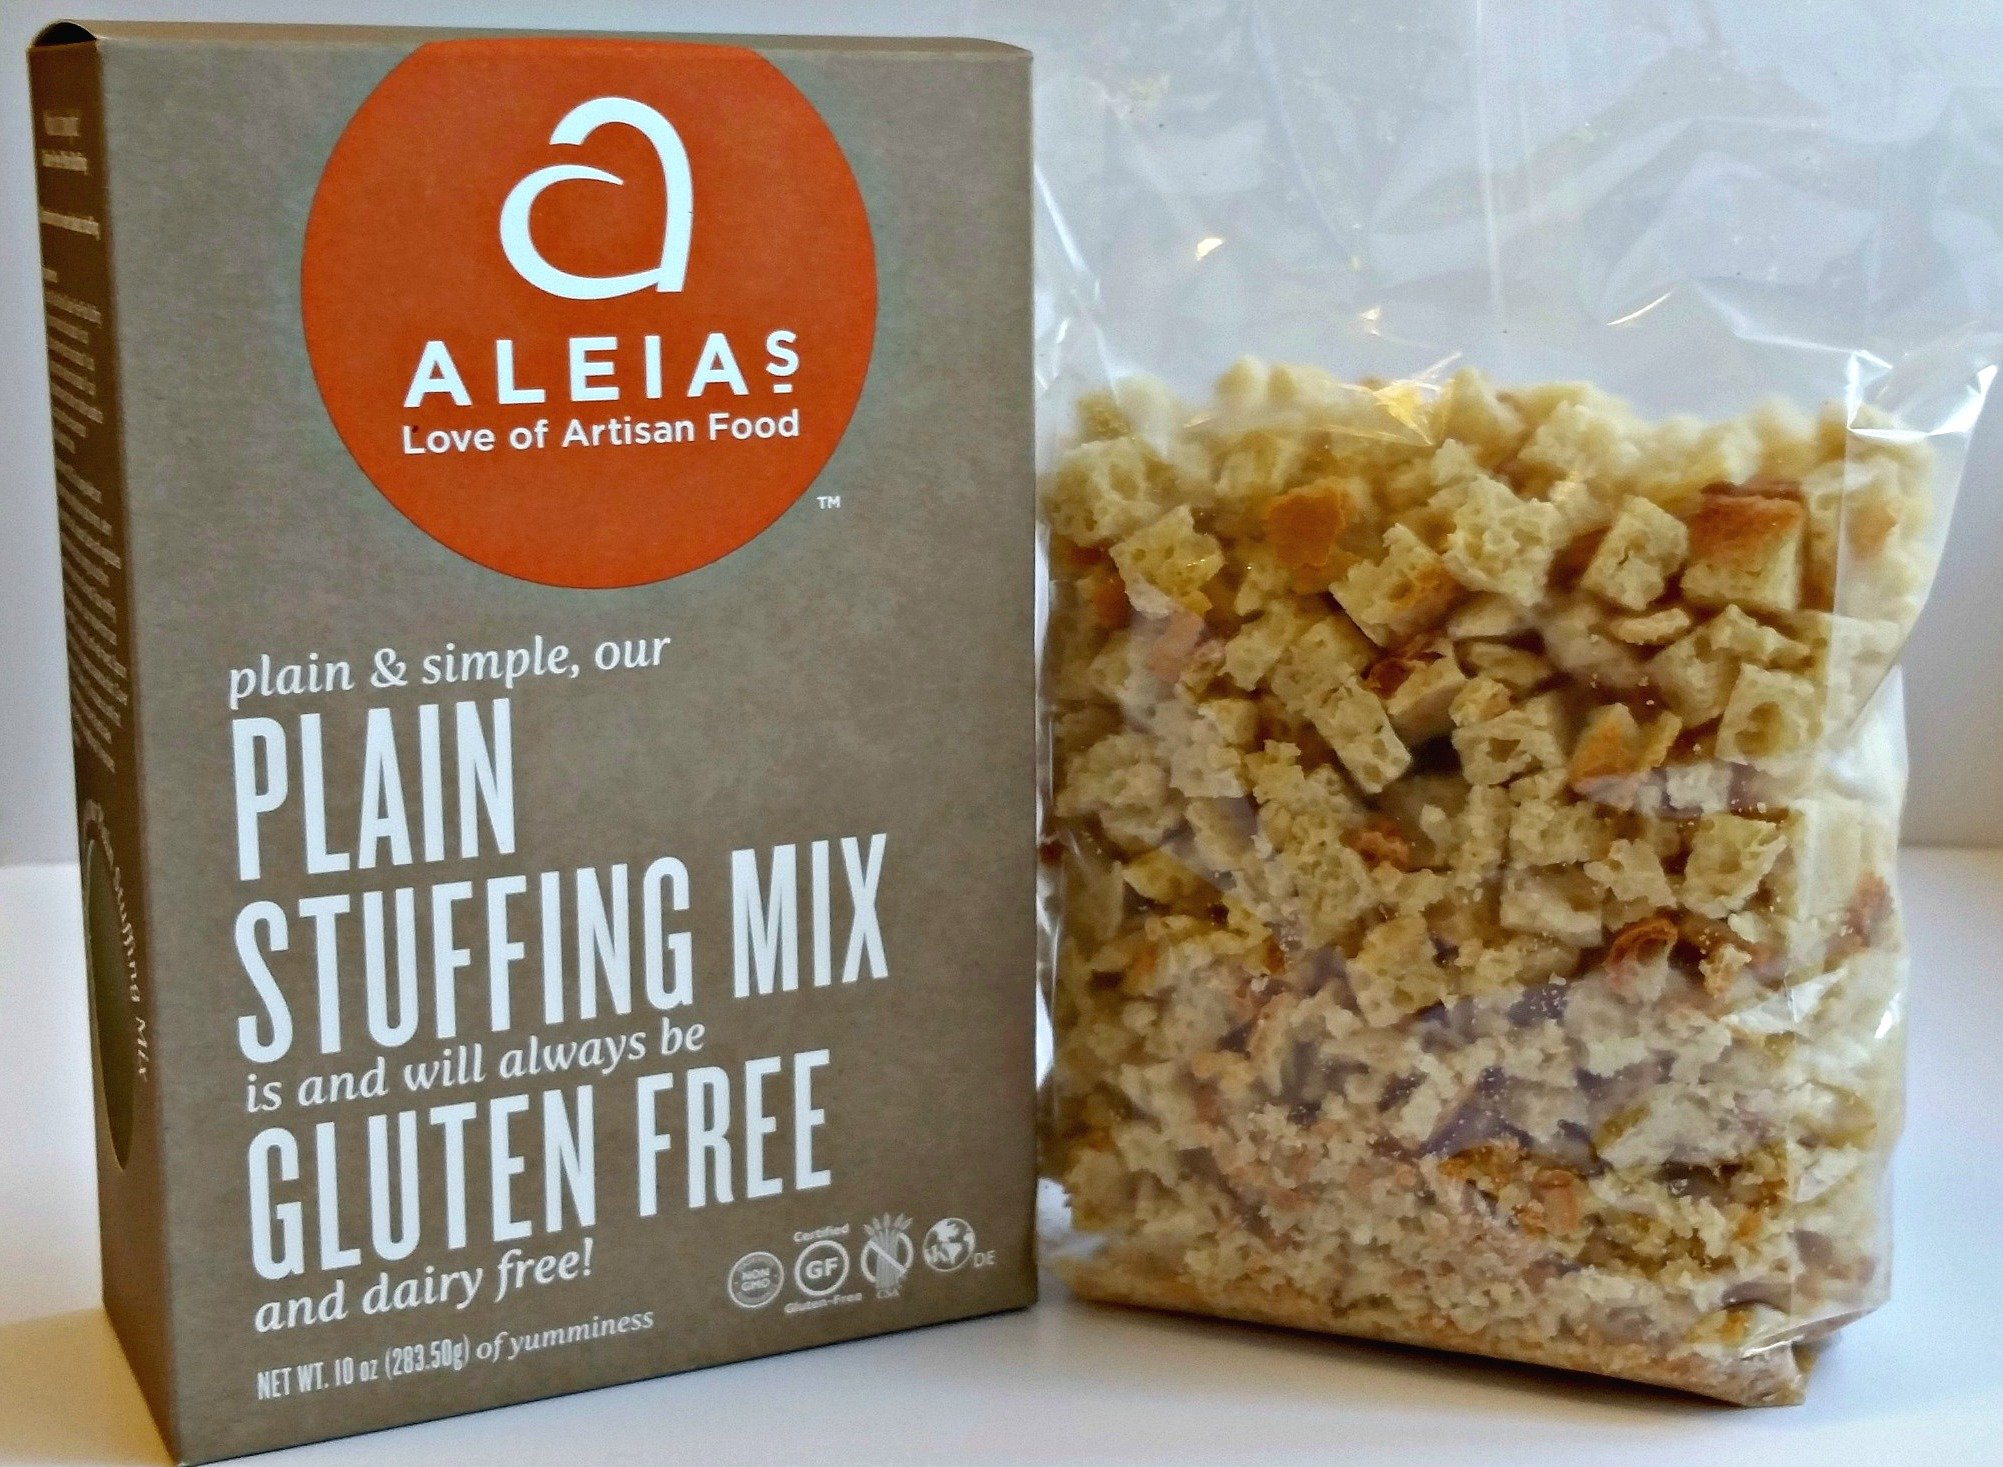 Aleia's Gluten Free Plain Stuffing Mix - Pack of 4 by Aleias